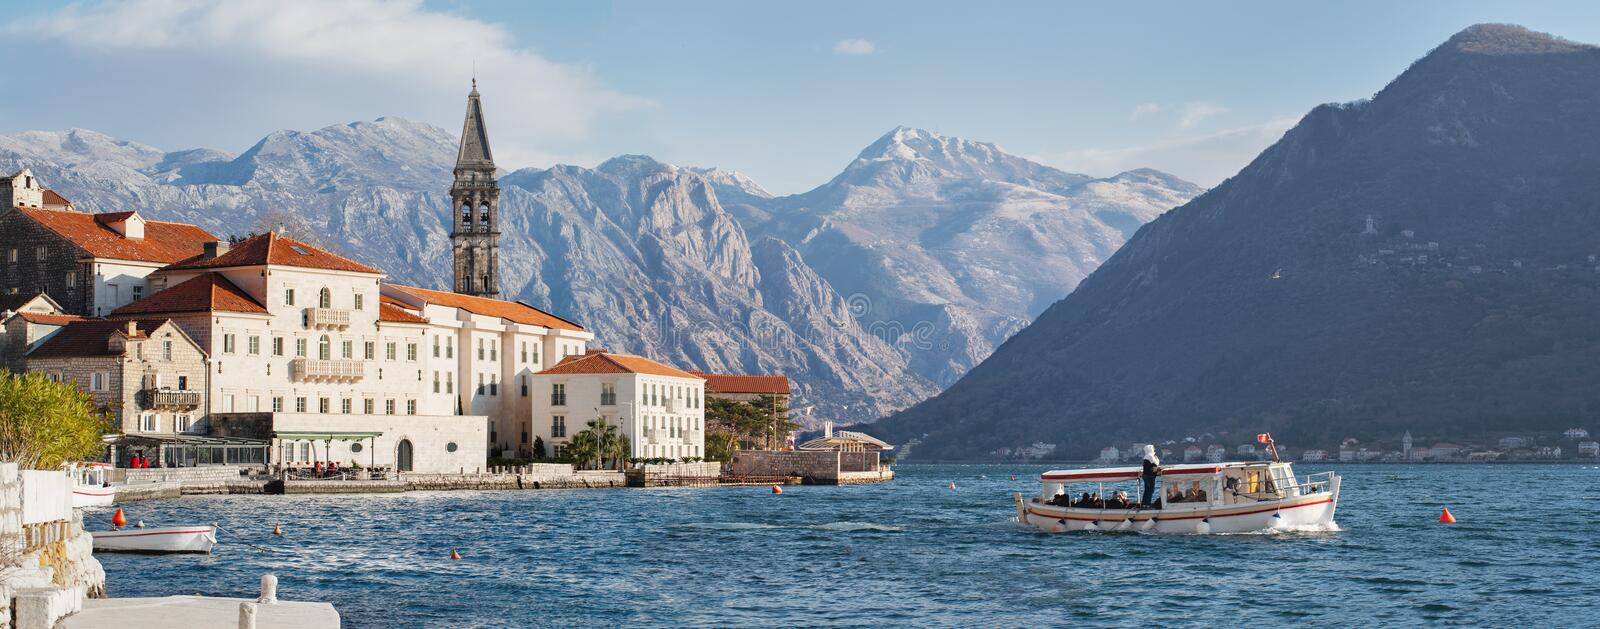 Sunny day on the waterfront in Perast royalty free stock photo